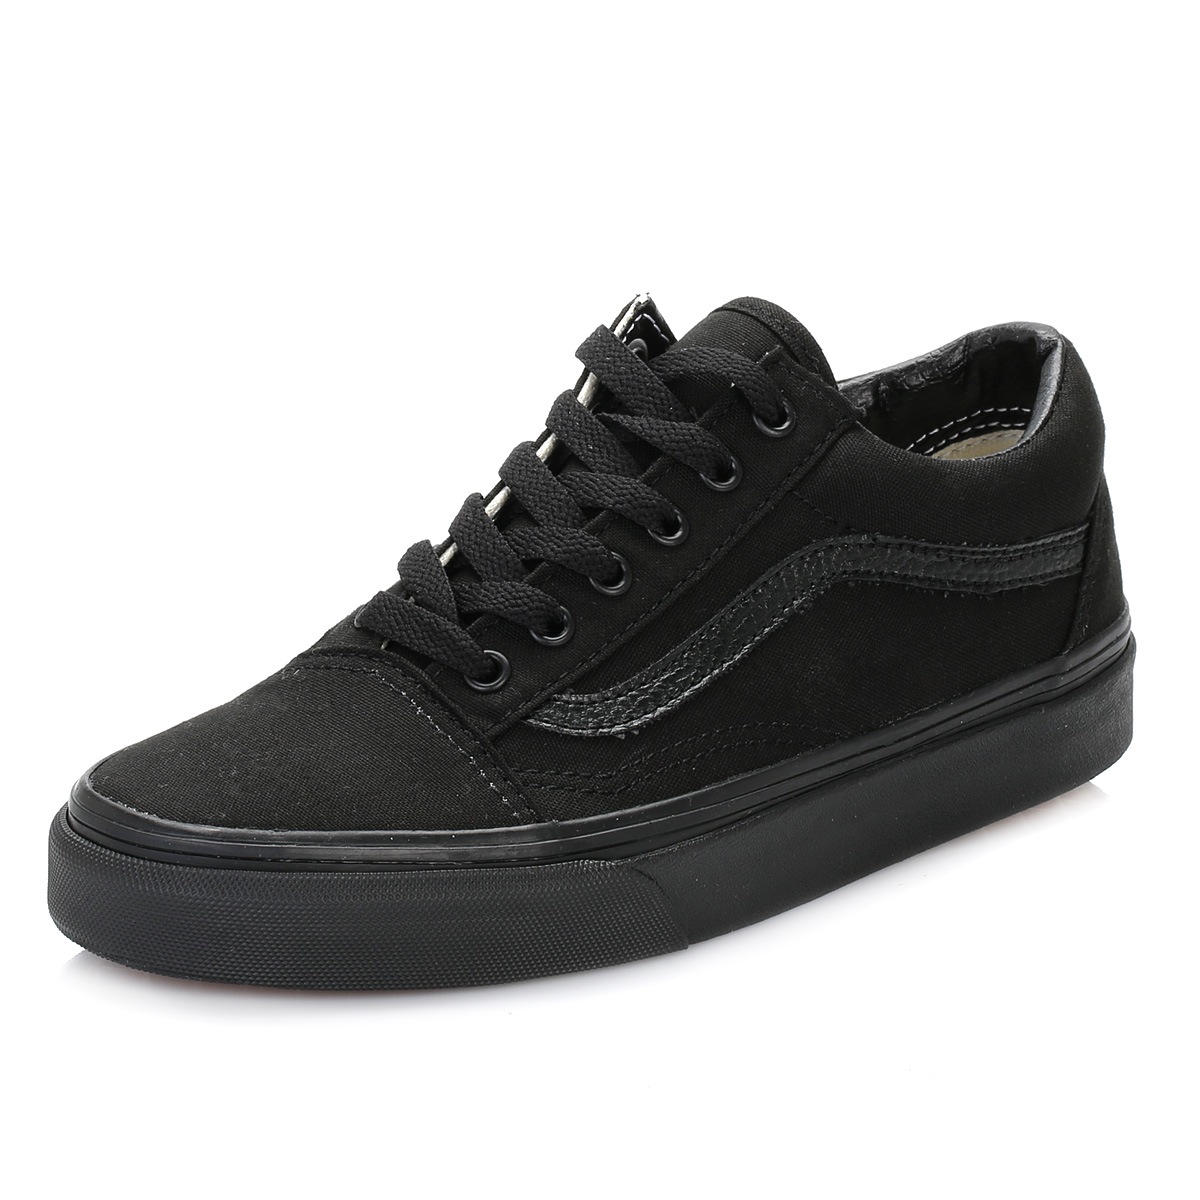 Mens Vans Authentic Canvas Shoes